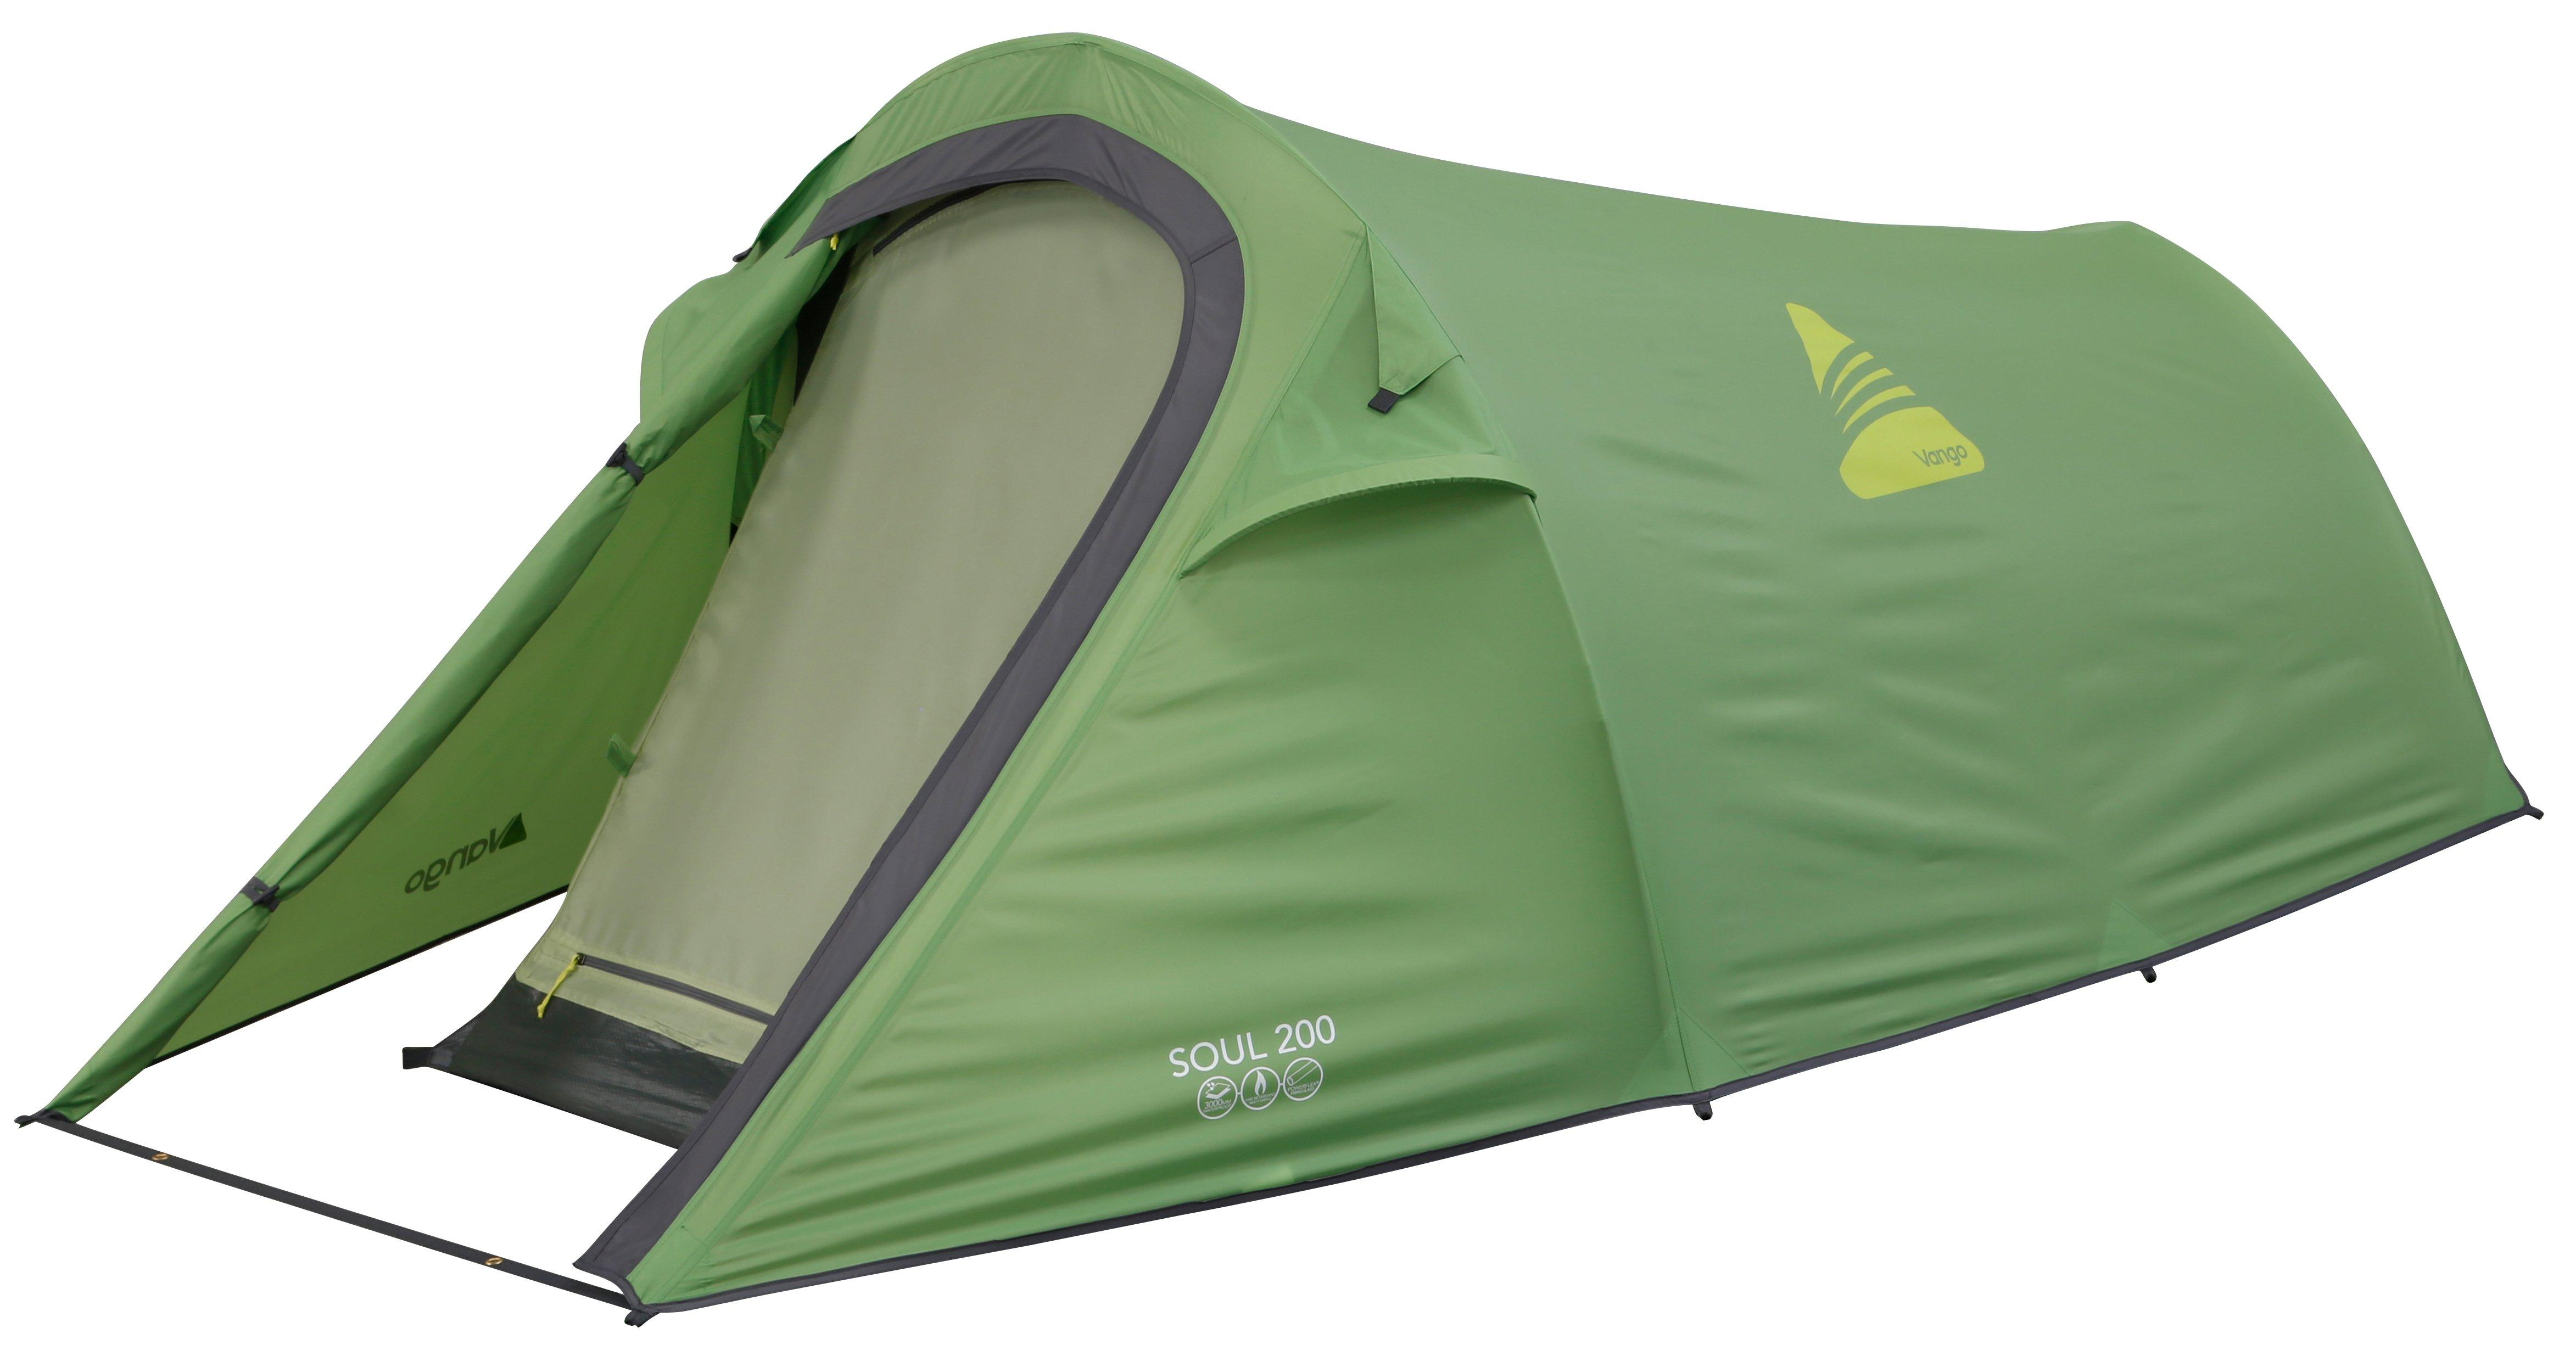 sc 1 st  Millets & Vango Soul 200 2 Person Tent